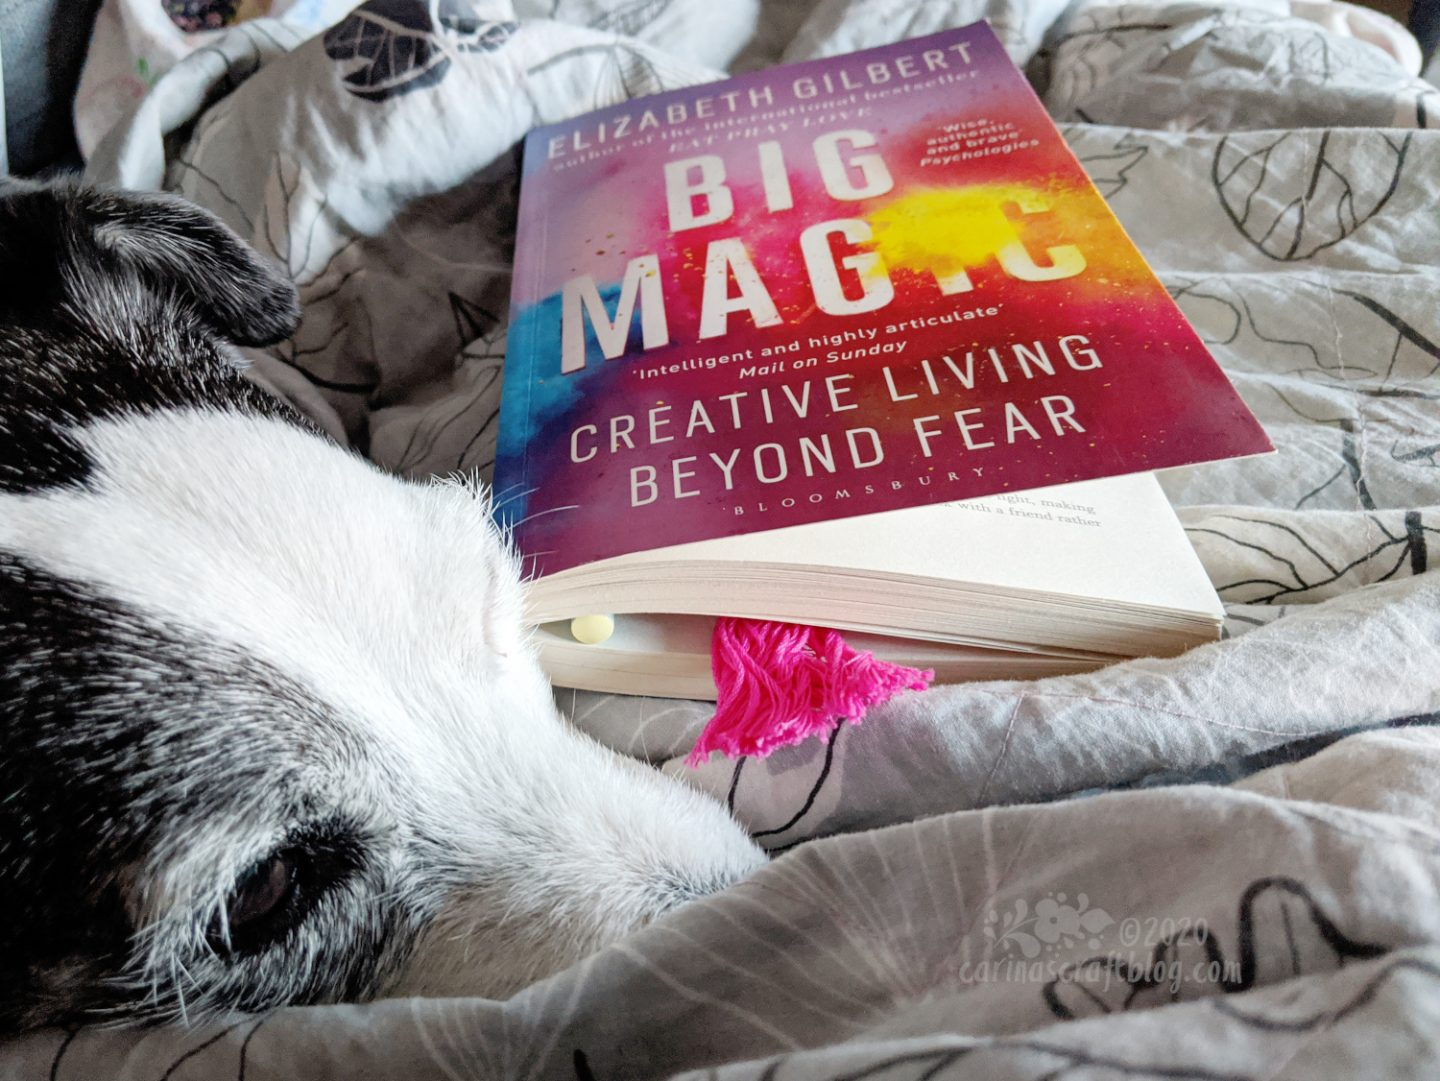 Book Big Magic next to dog